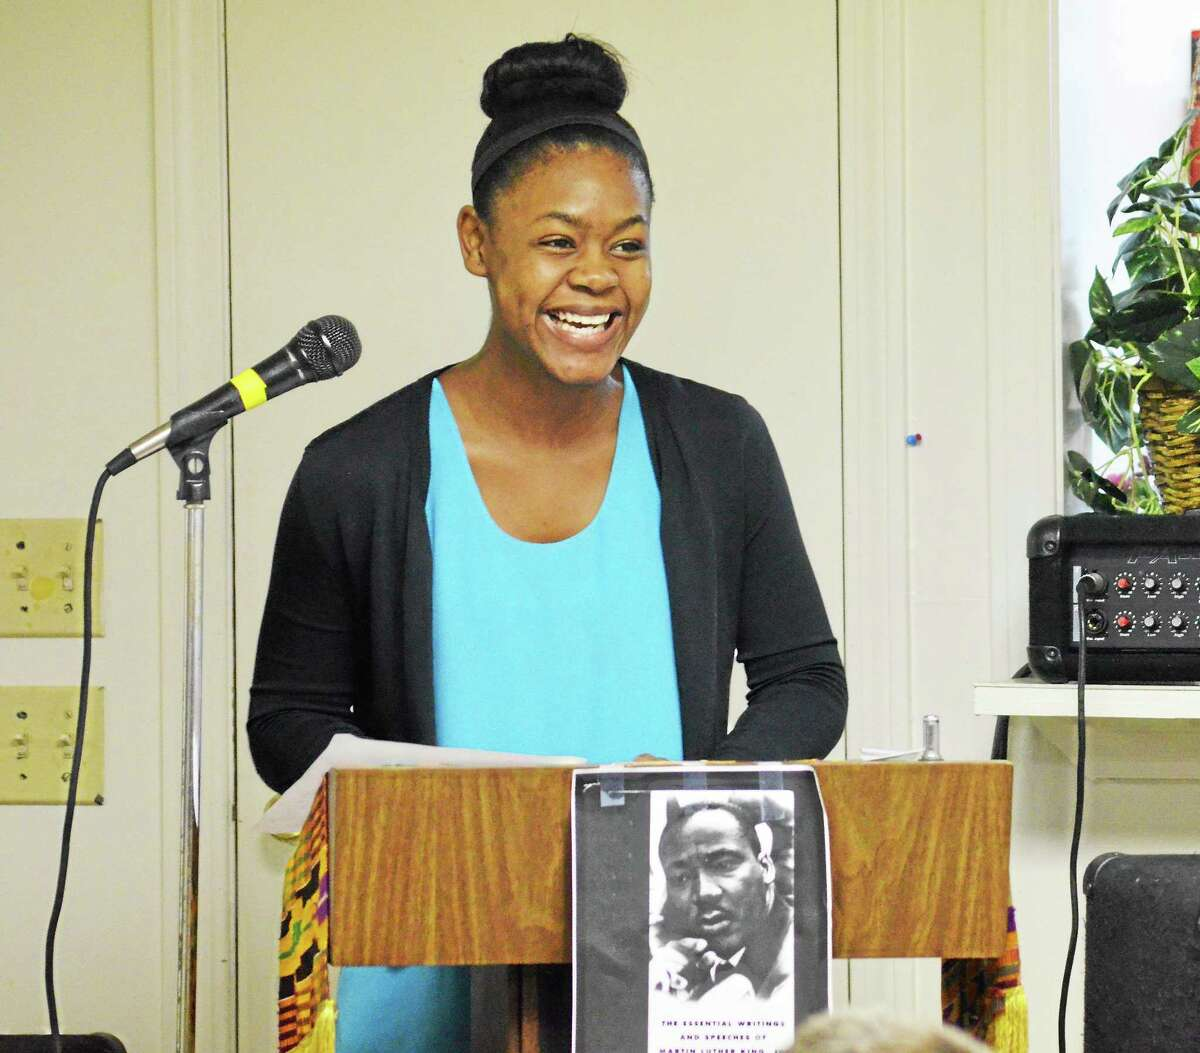 Withney Martin, a senior at Torrington High School, spoke about the legacy of Dr. Martin Luther King Jr Saturday during a celebration of Dr. King.